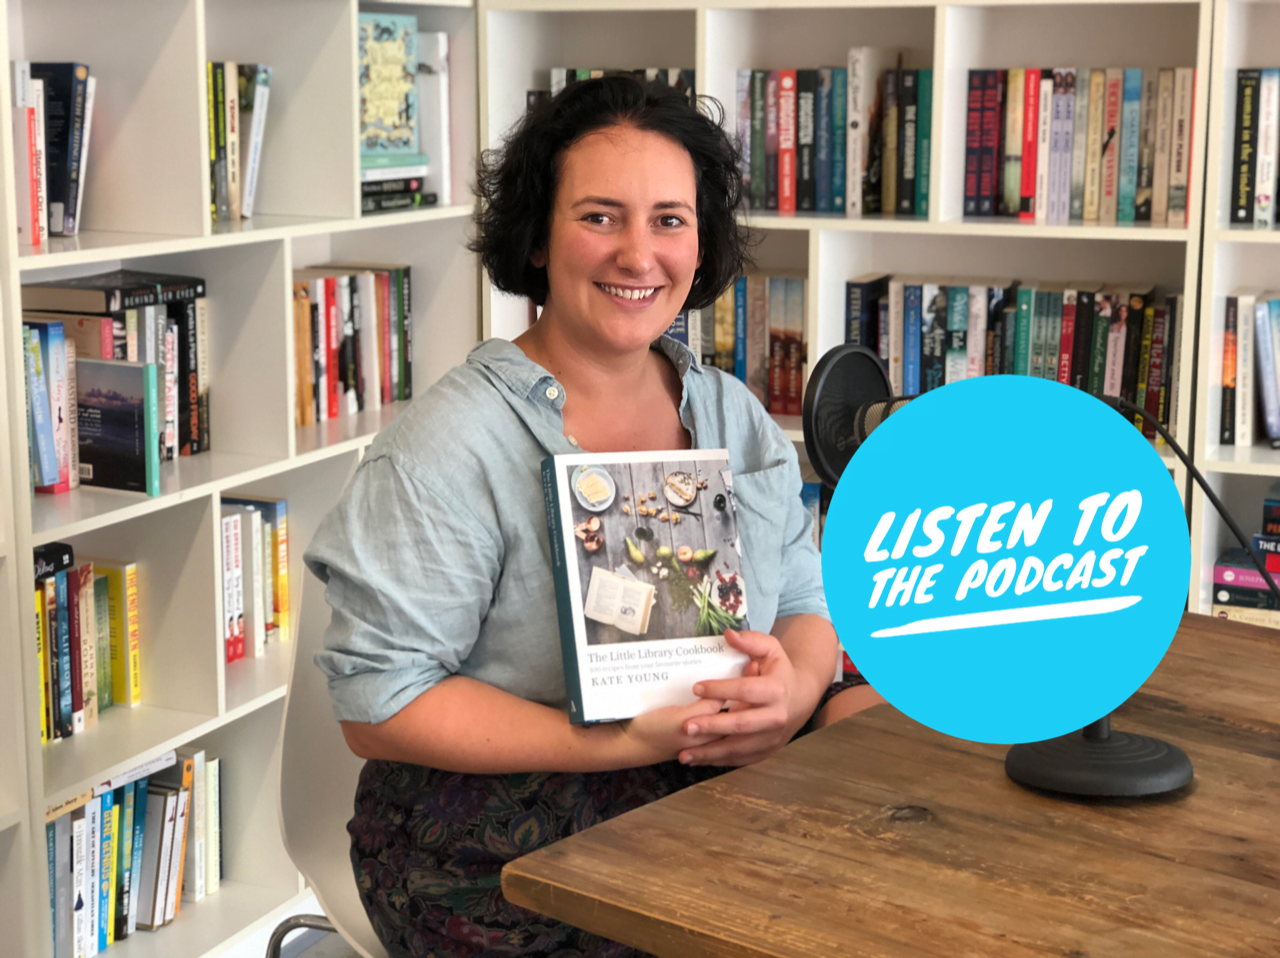 Podcast Cooking The Books With Kate Young Better Reading